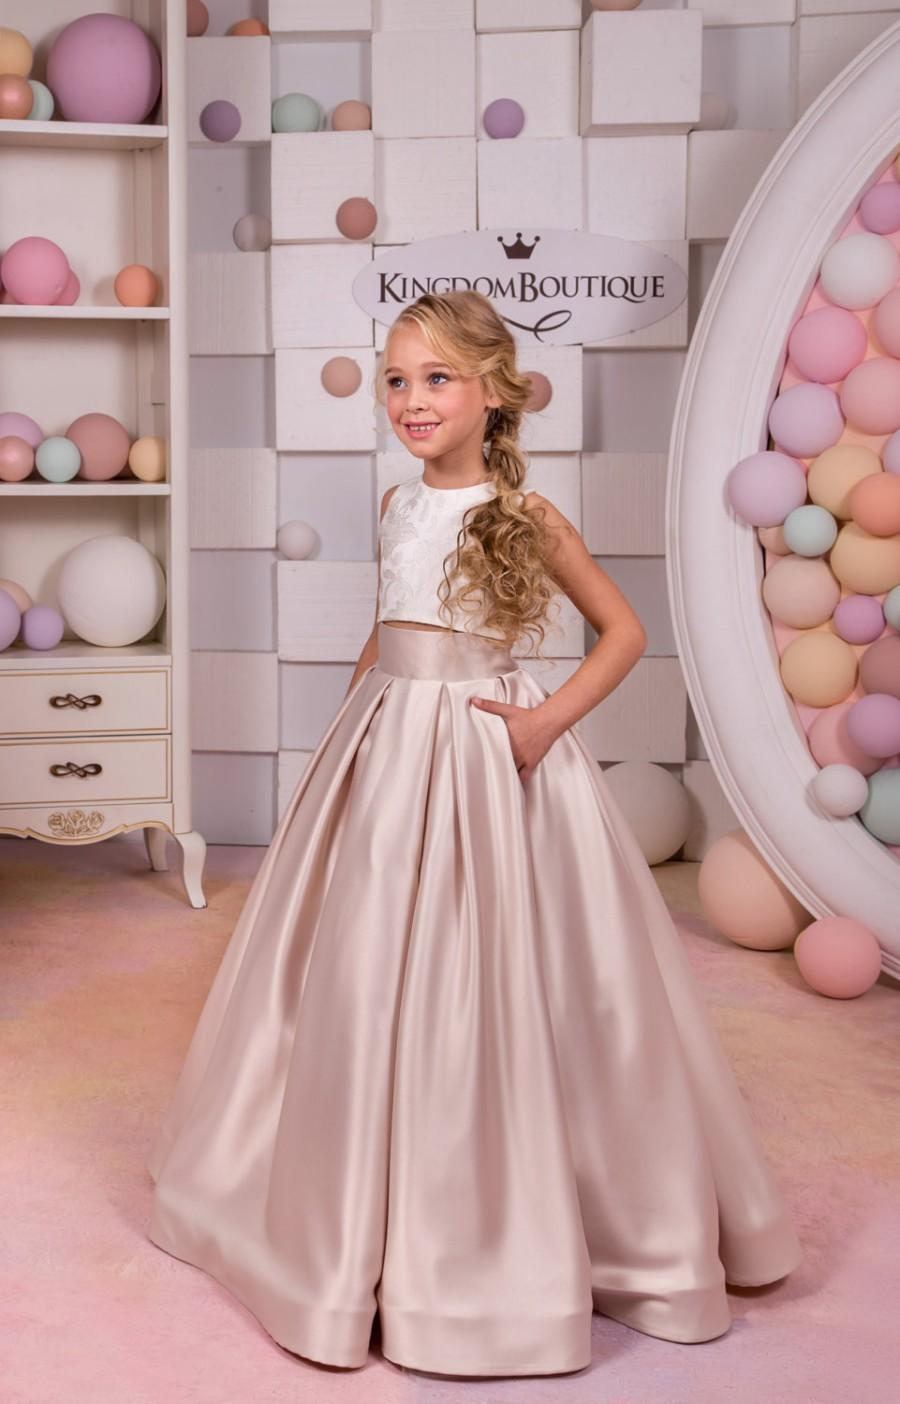 54e7b06868c3 Ivory Cappuccino Lace Satin Flower Girl Dress - Wedding Party Holiday  Birthday Bridesmaid Flower Girl Blush Satin Lace Dress 15-047